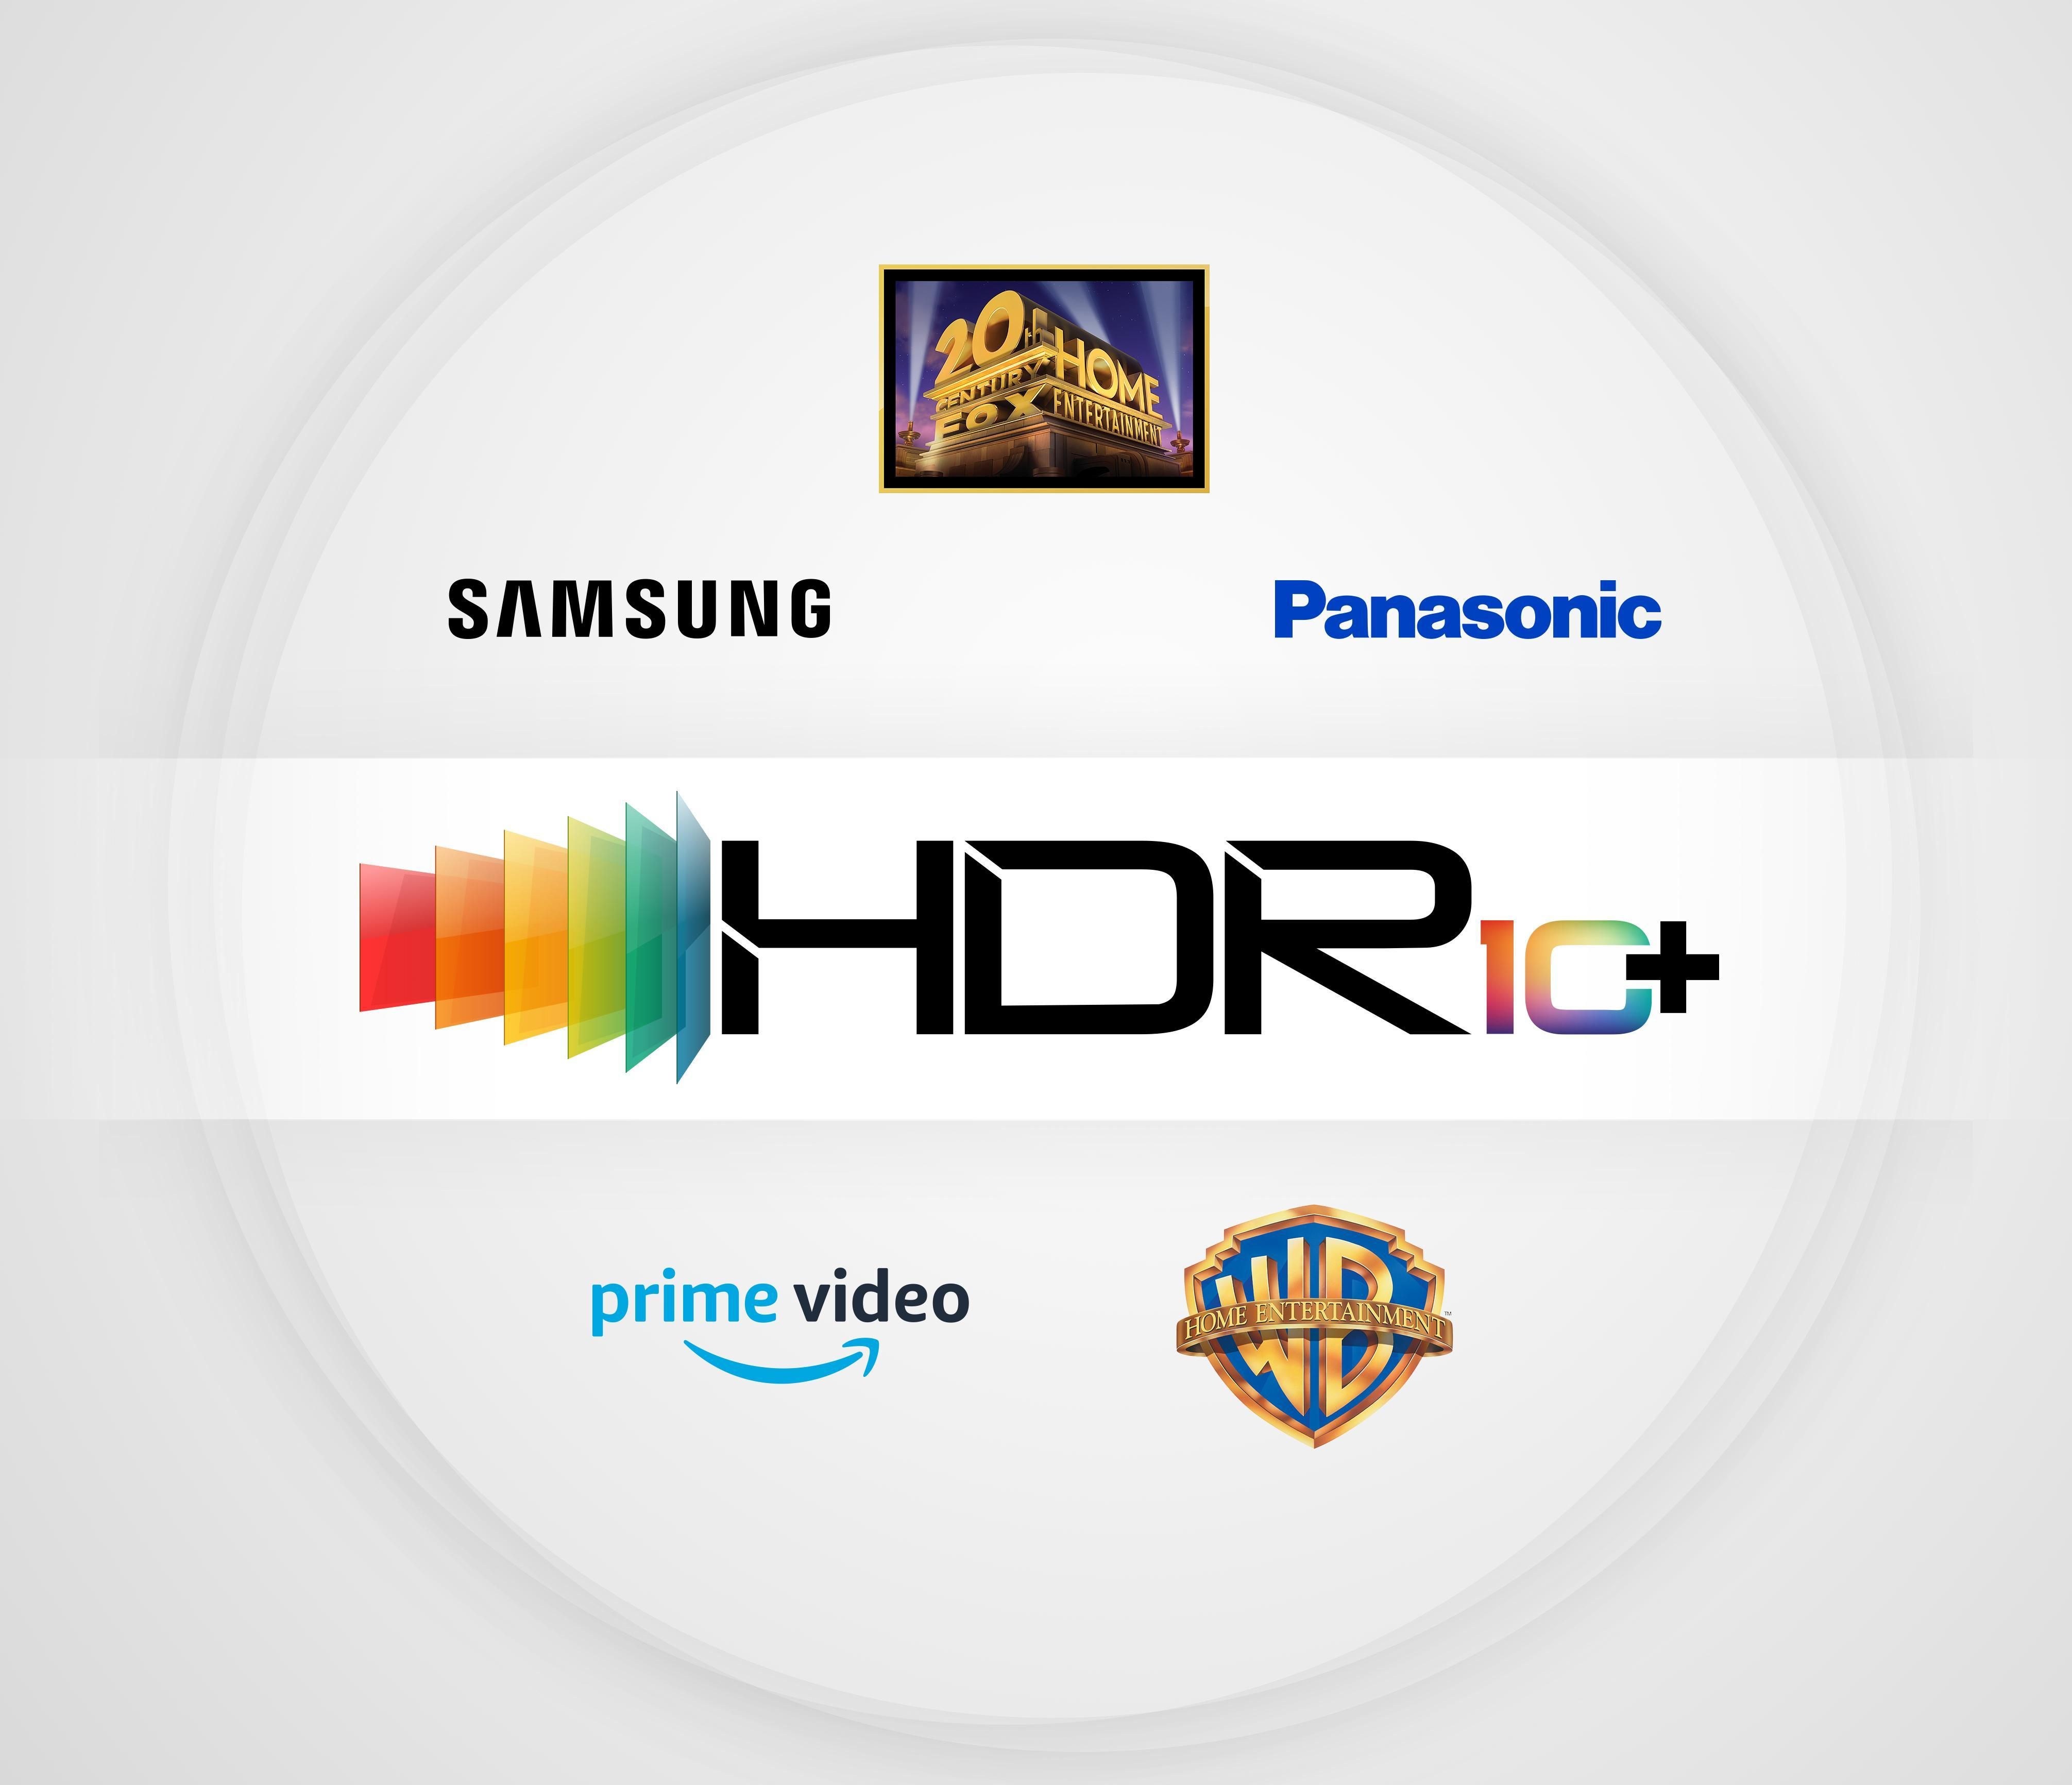 20th Century Fox Panasonic And Samsung Gain Momentum For Best Smart Tv Wiring Diagram Possible Viewing Experience With Hdr10 Technology Business Wire